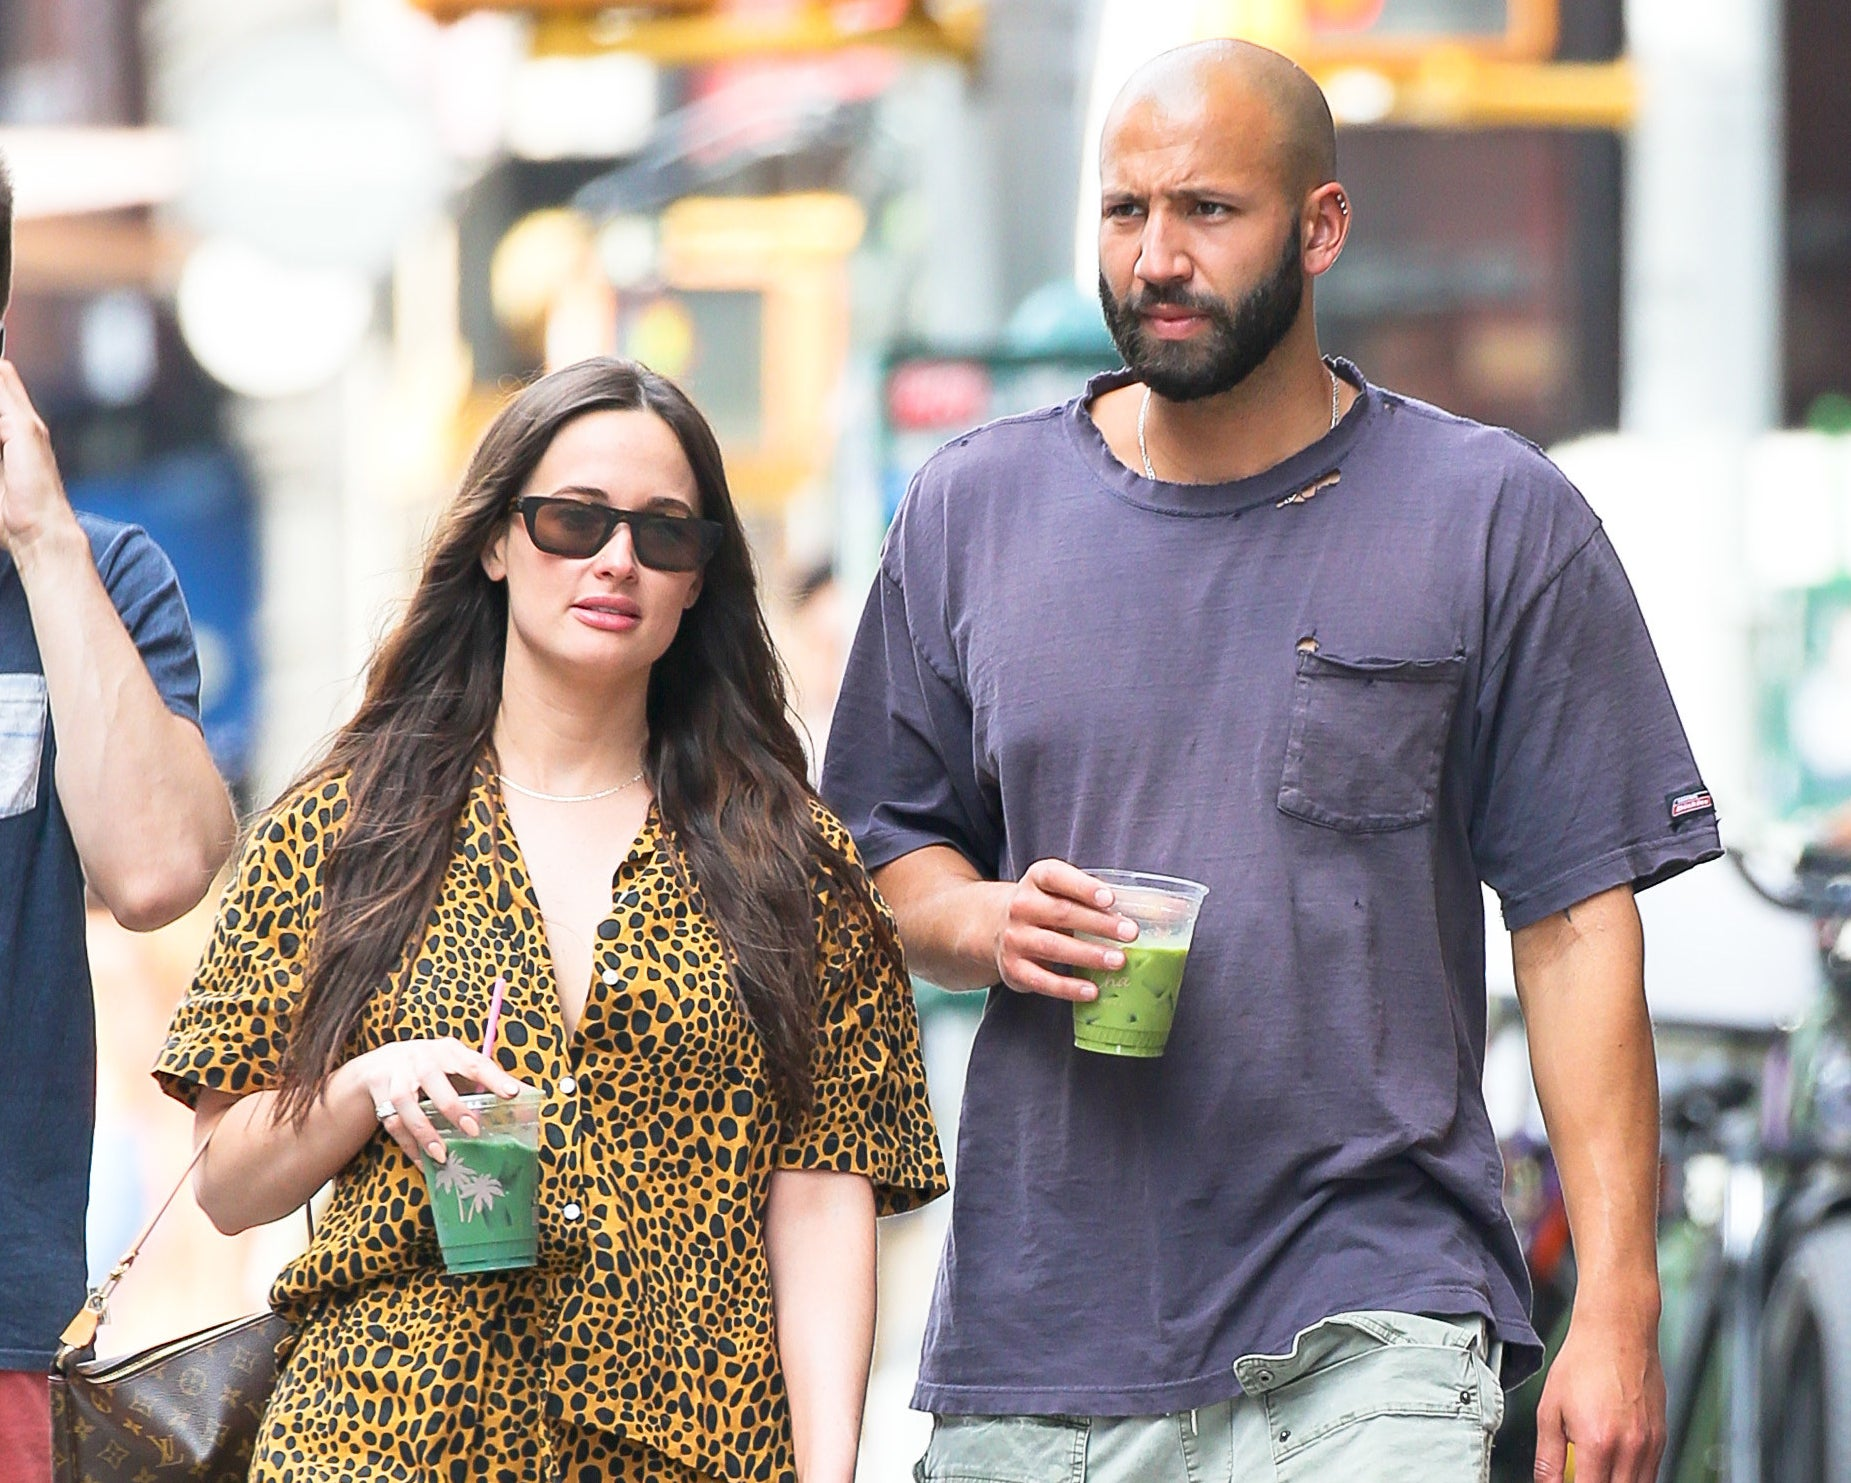 Kacey and Cole walk with drinks in hand on another day in New York